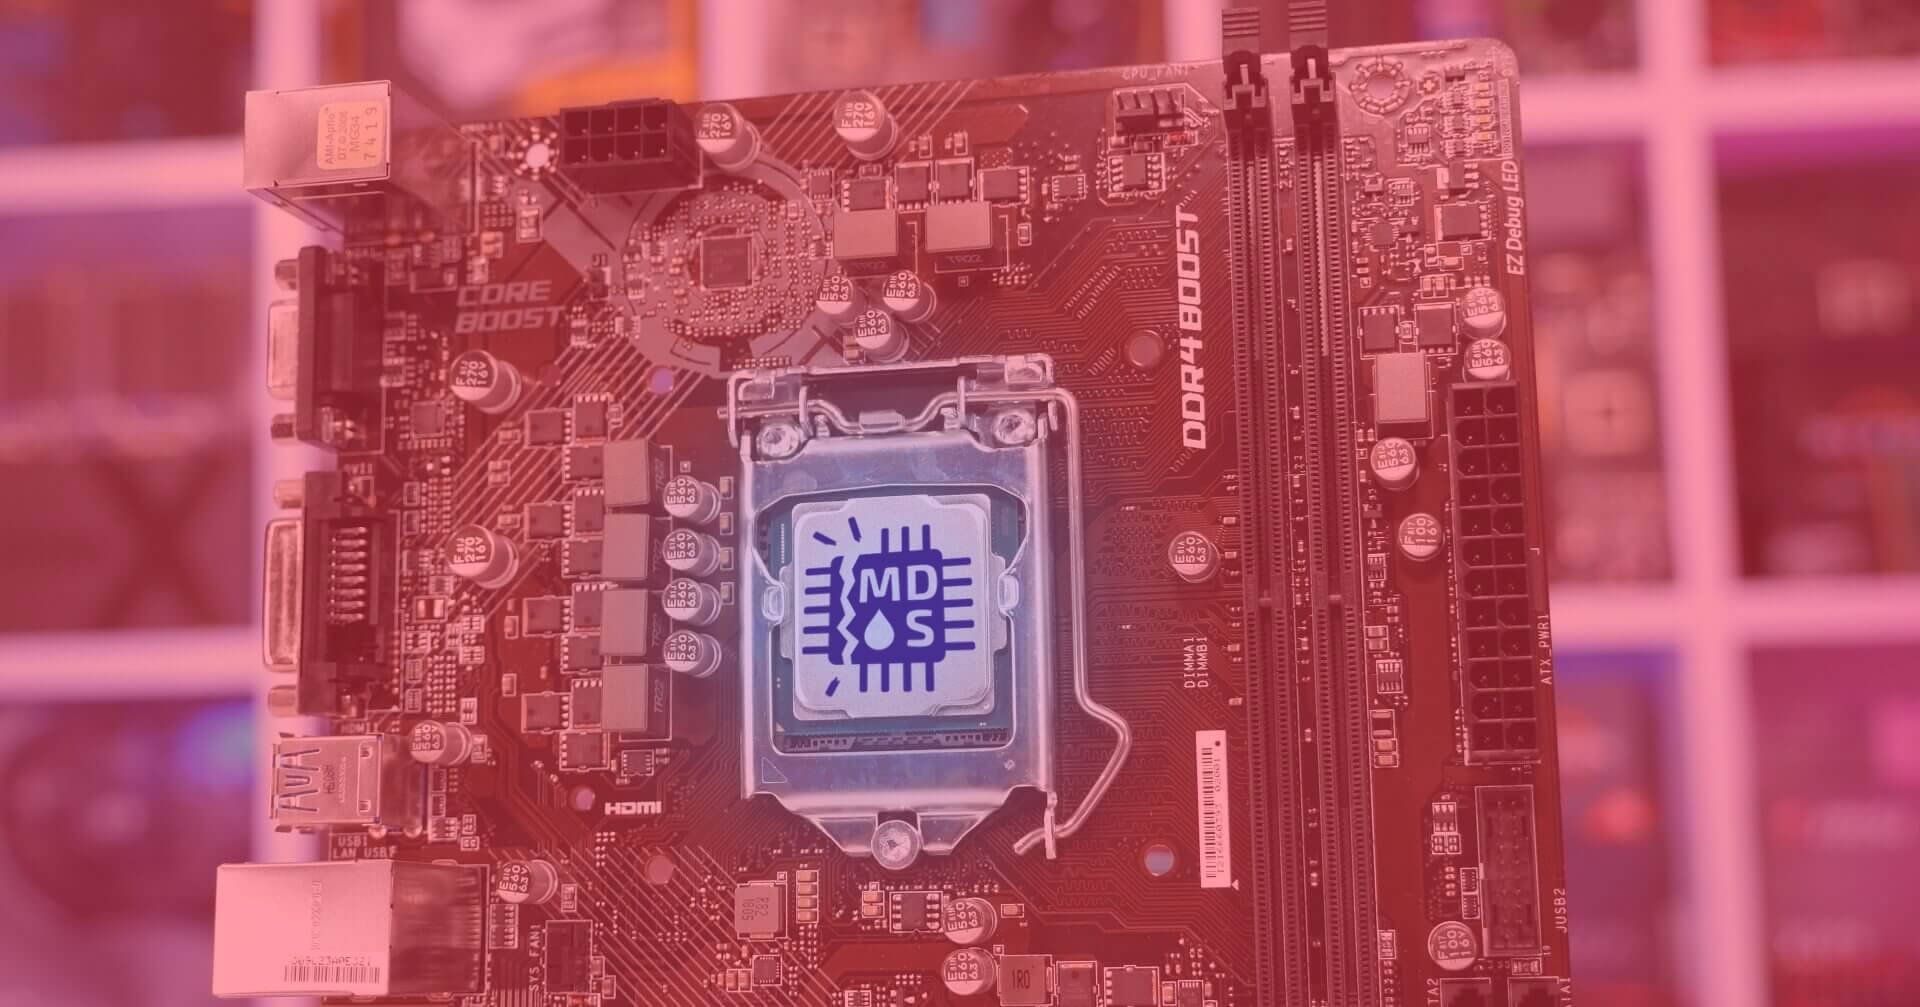 Another speculative execution exploit affects Intel Core